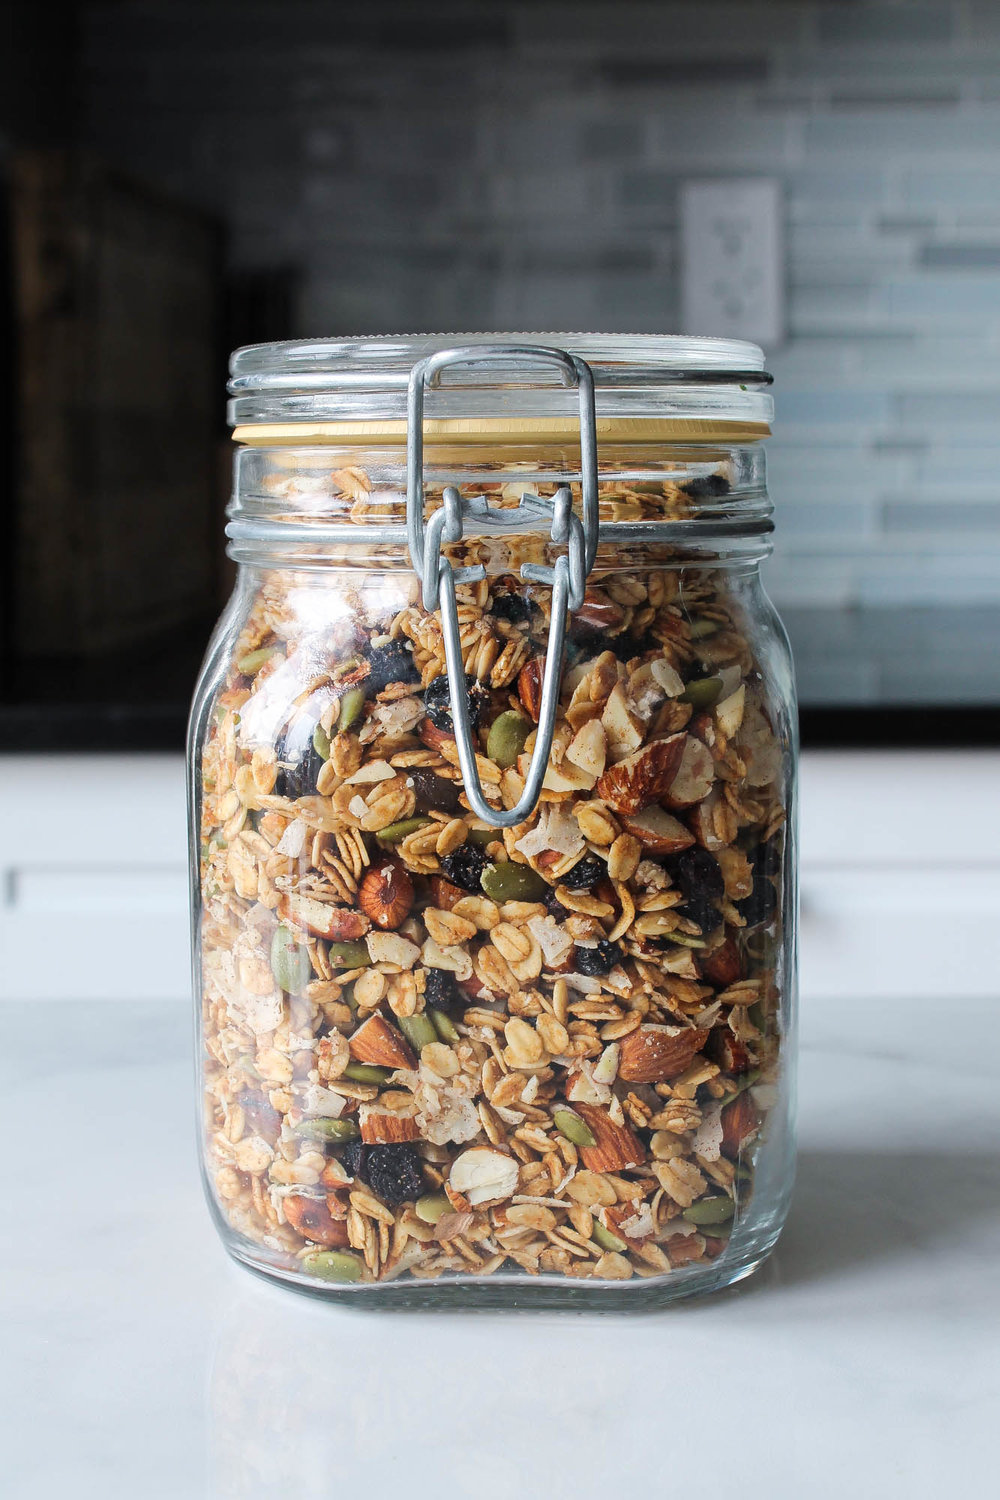 Maca Almond Granola || This healthy plant based granola made with almonds, pepitas, and maca powder is perfect for breakfast or a quick snack! Gluten free, vegan, no refined sugars and takes less than 30 minutes to make. Adaptogens like maca help balance hormones and gives a malted caramel flavour. || creamandhoney.ca